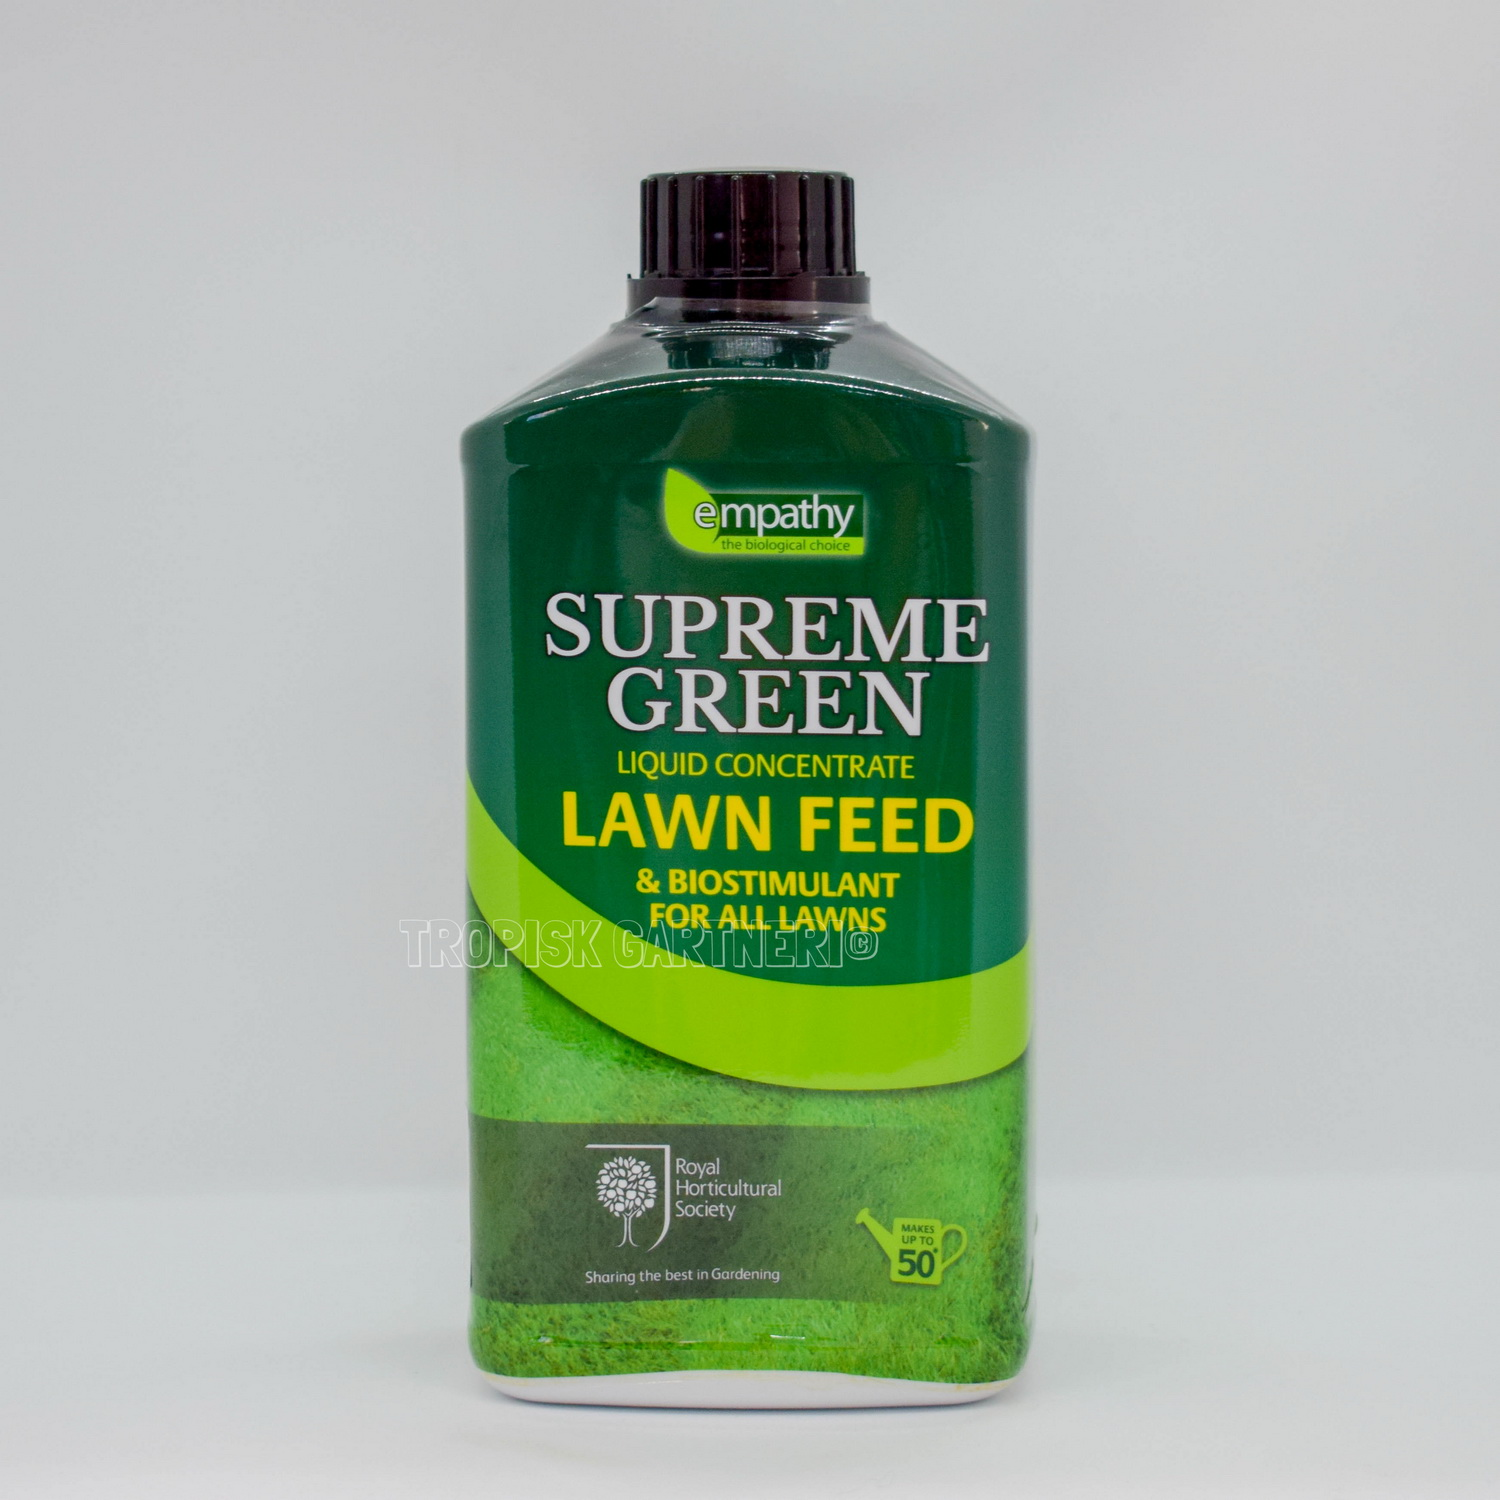 Supreme Green - Lawn Feed